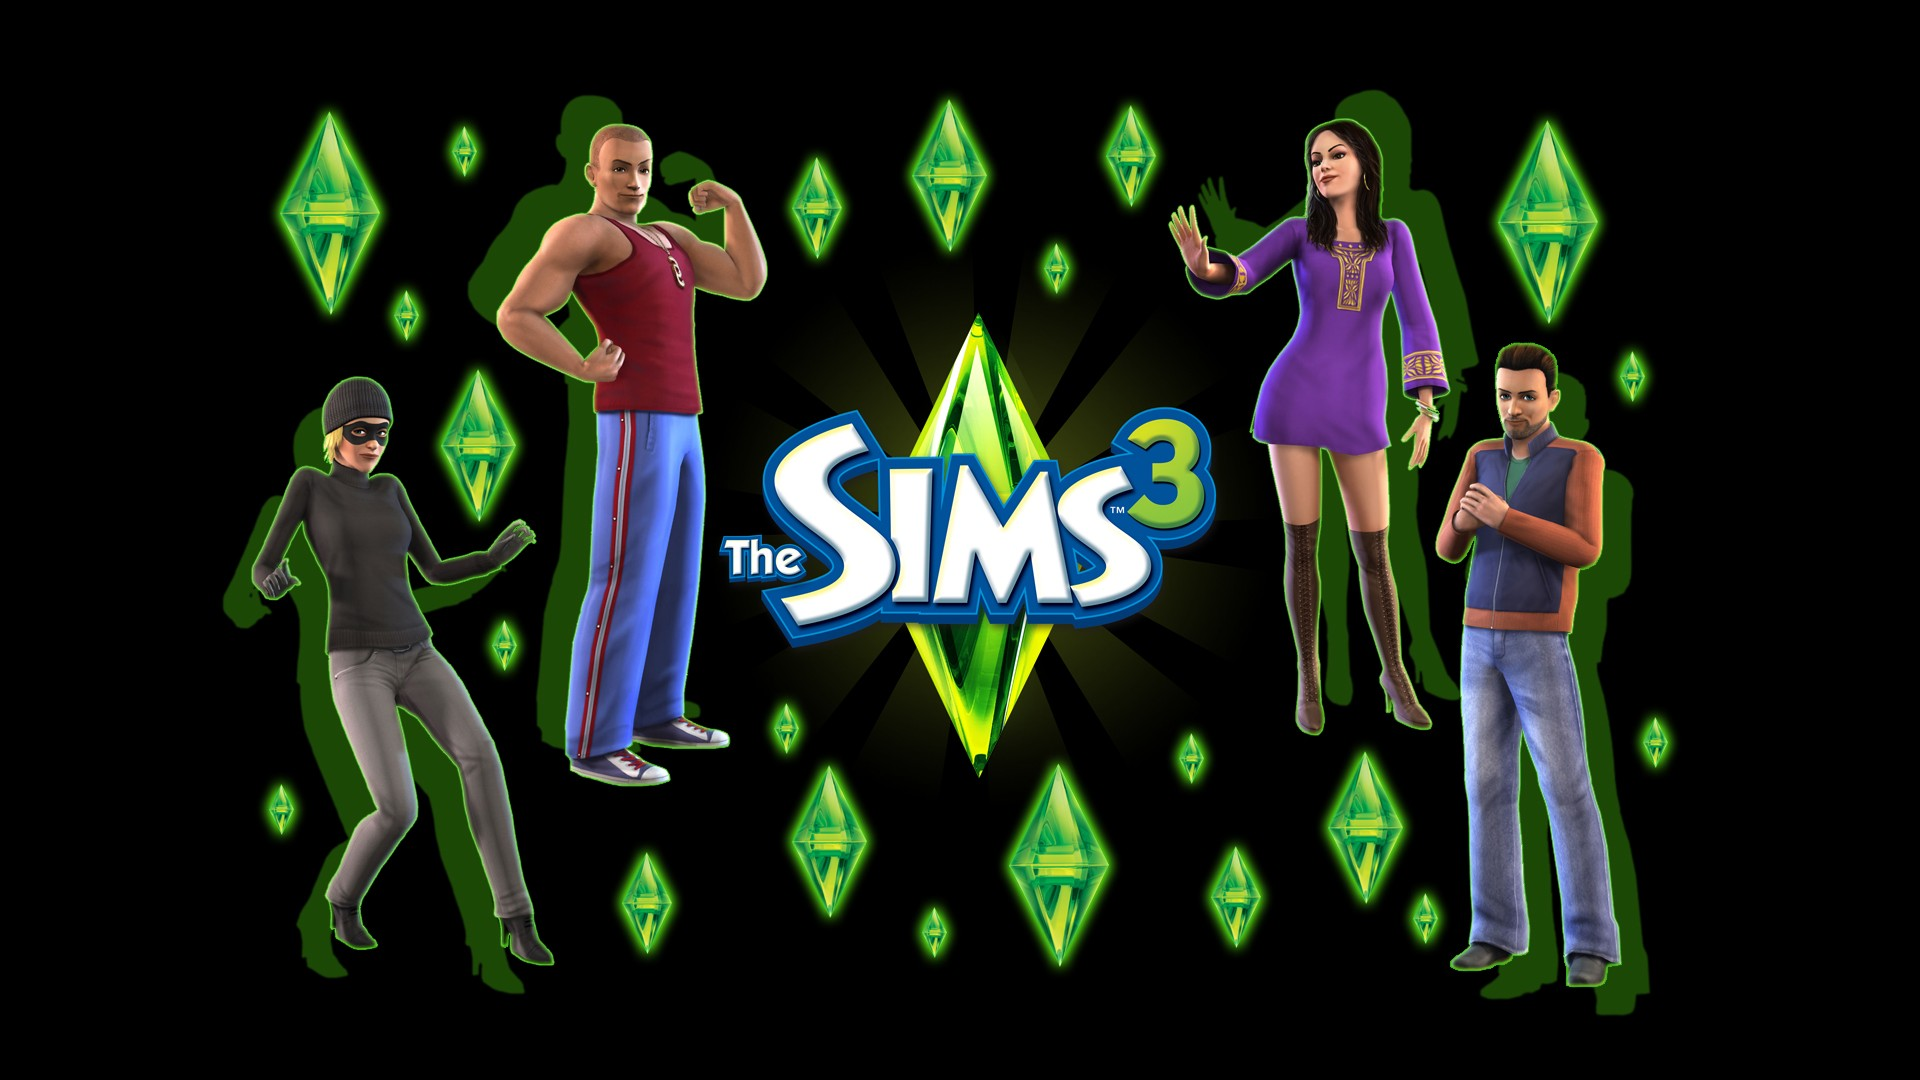 The Sims 3 wallpaper 3